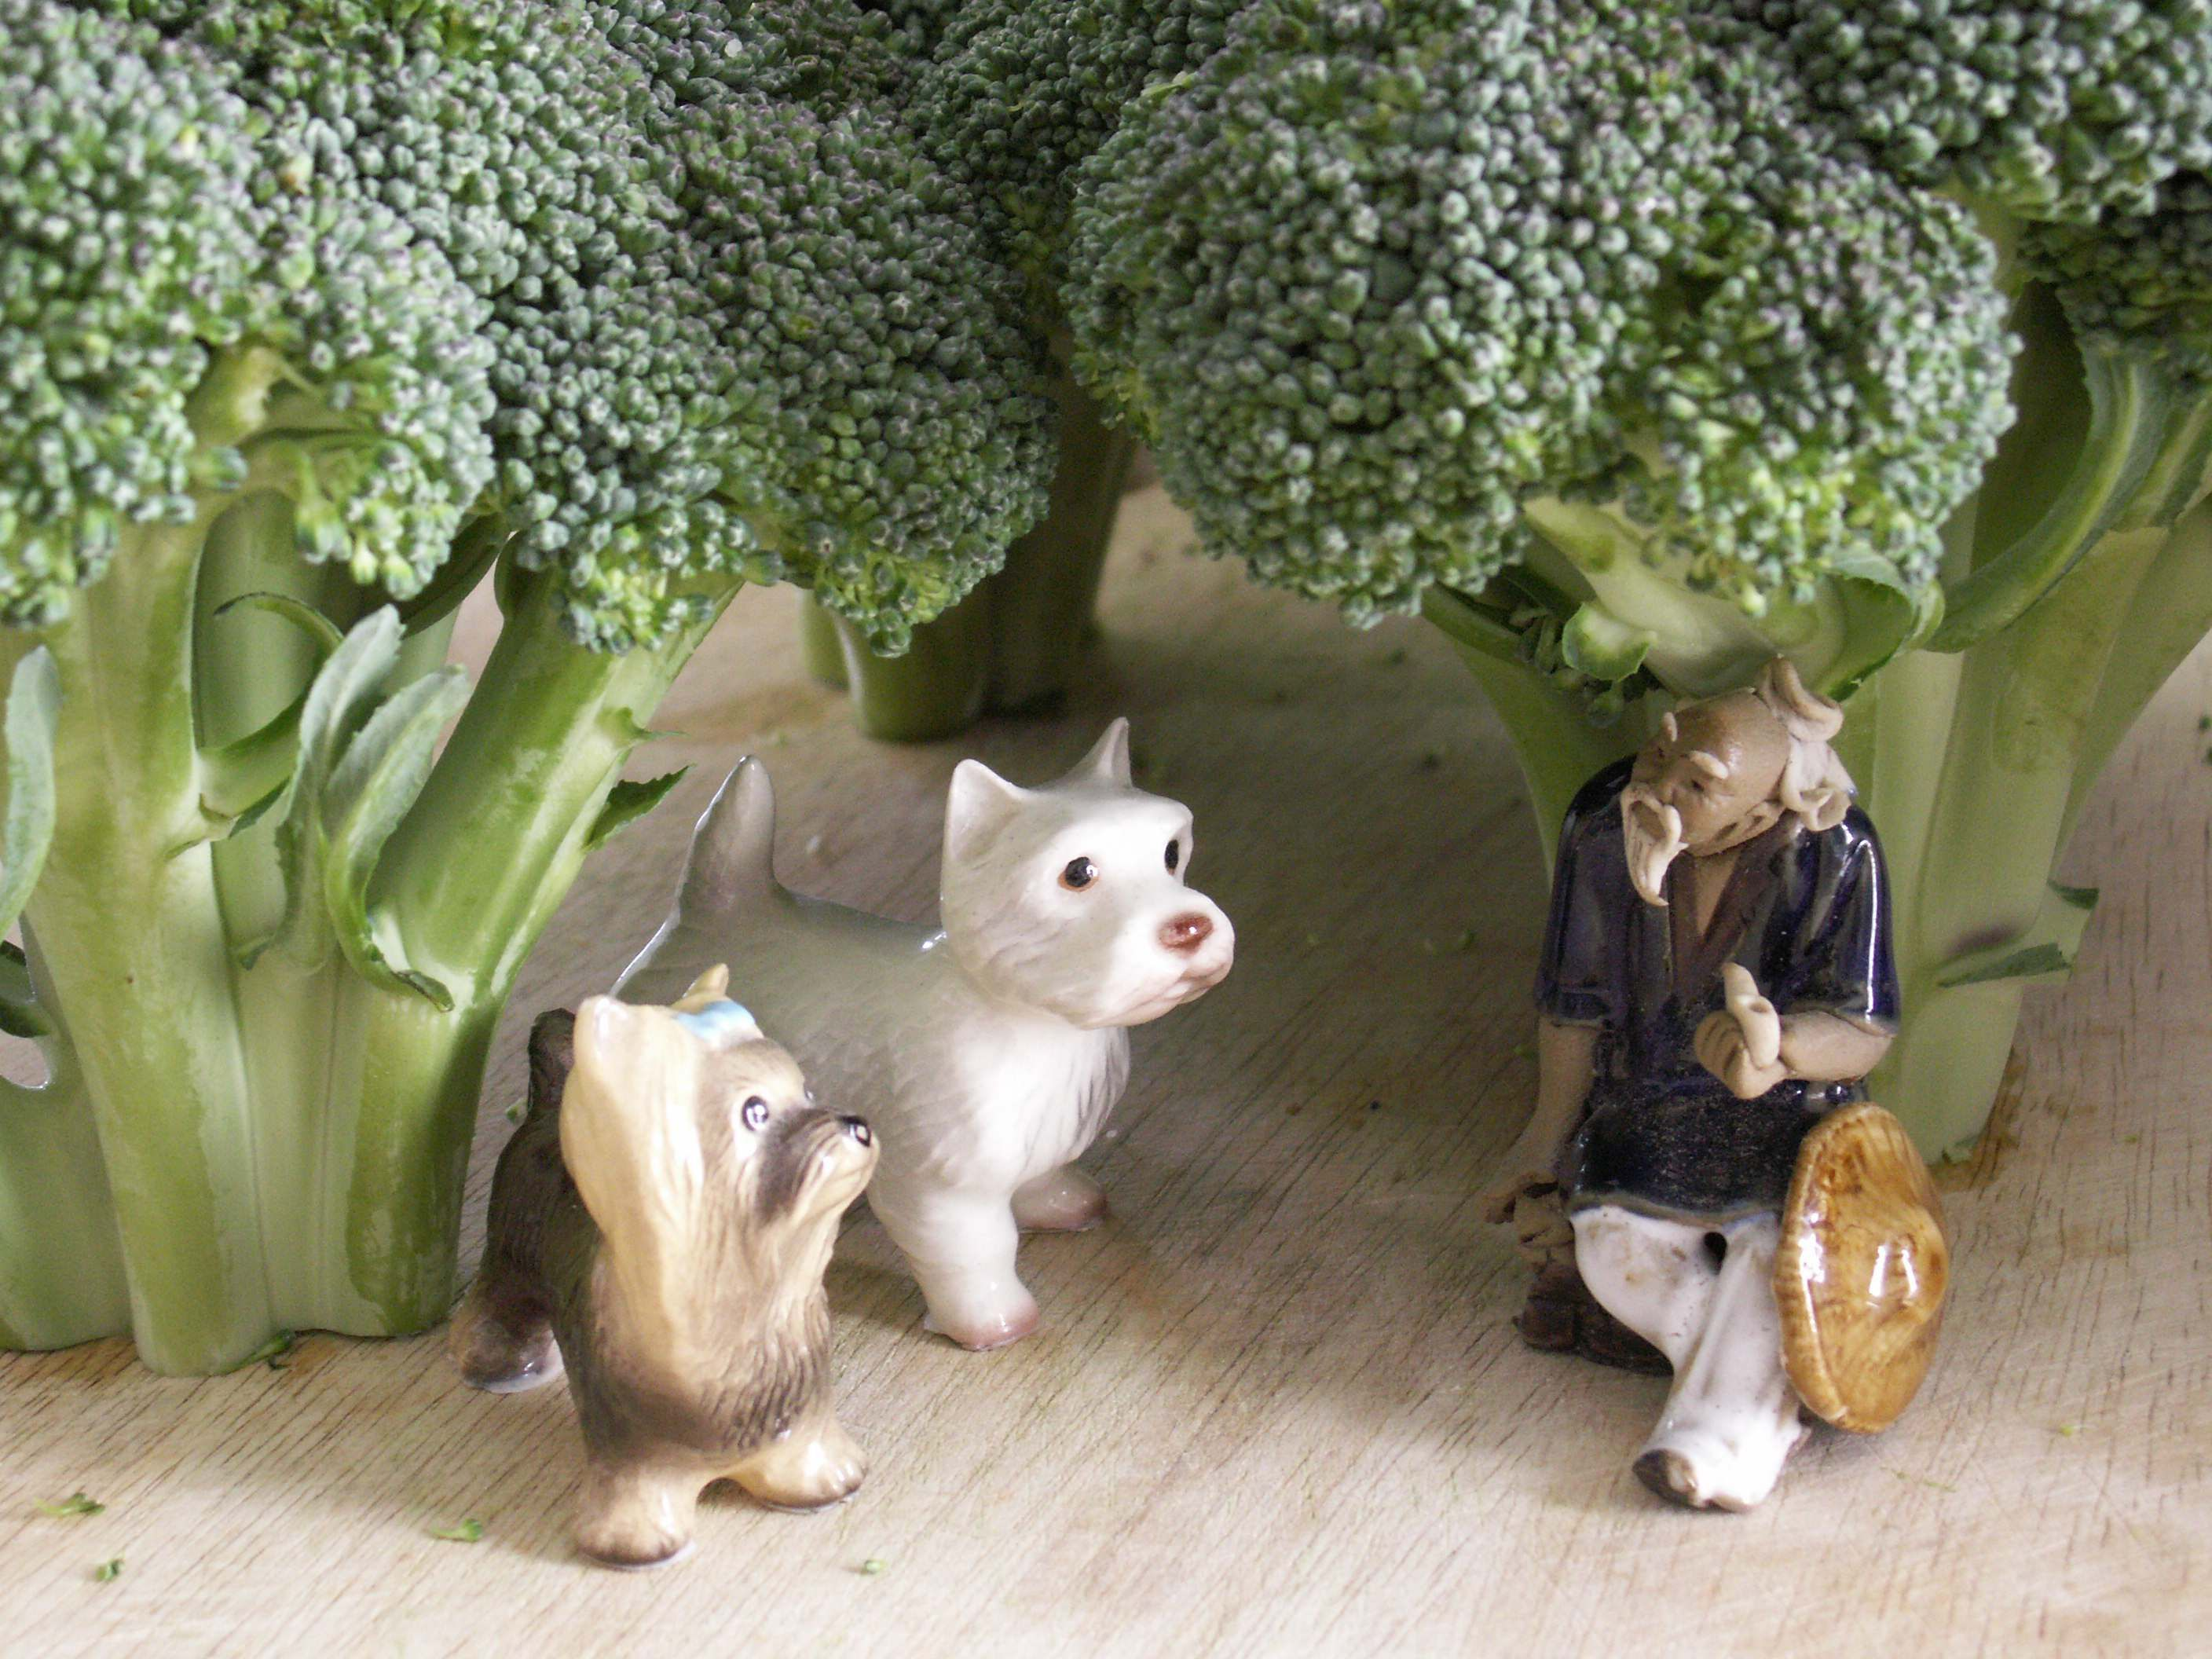 Maggie & Toby find wisdom in the broccoli forest.